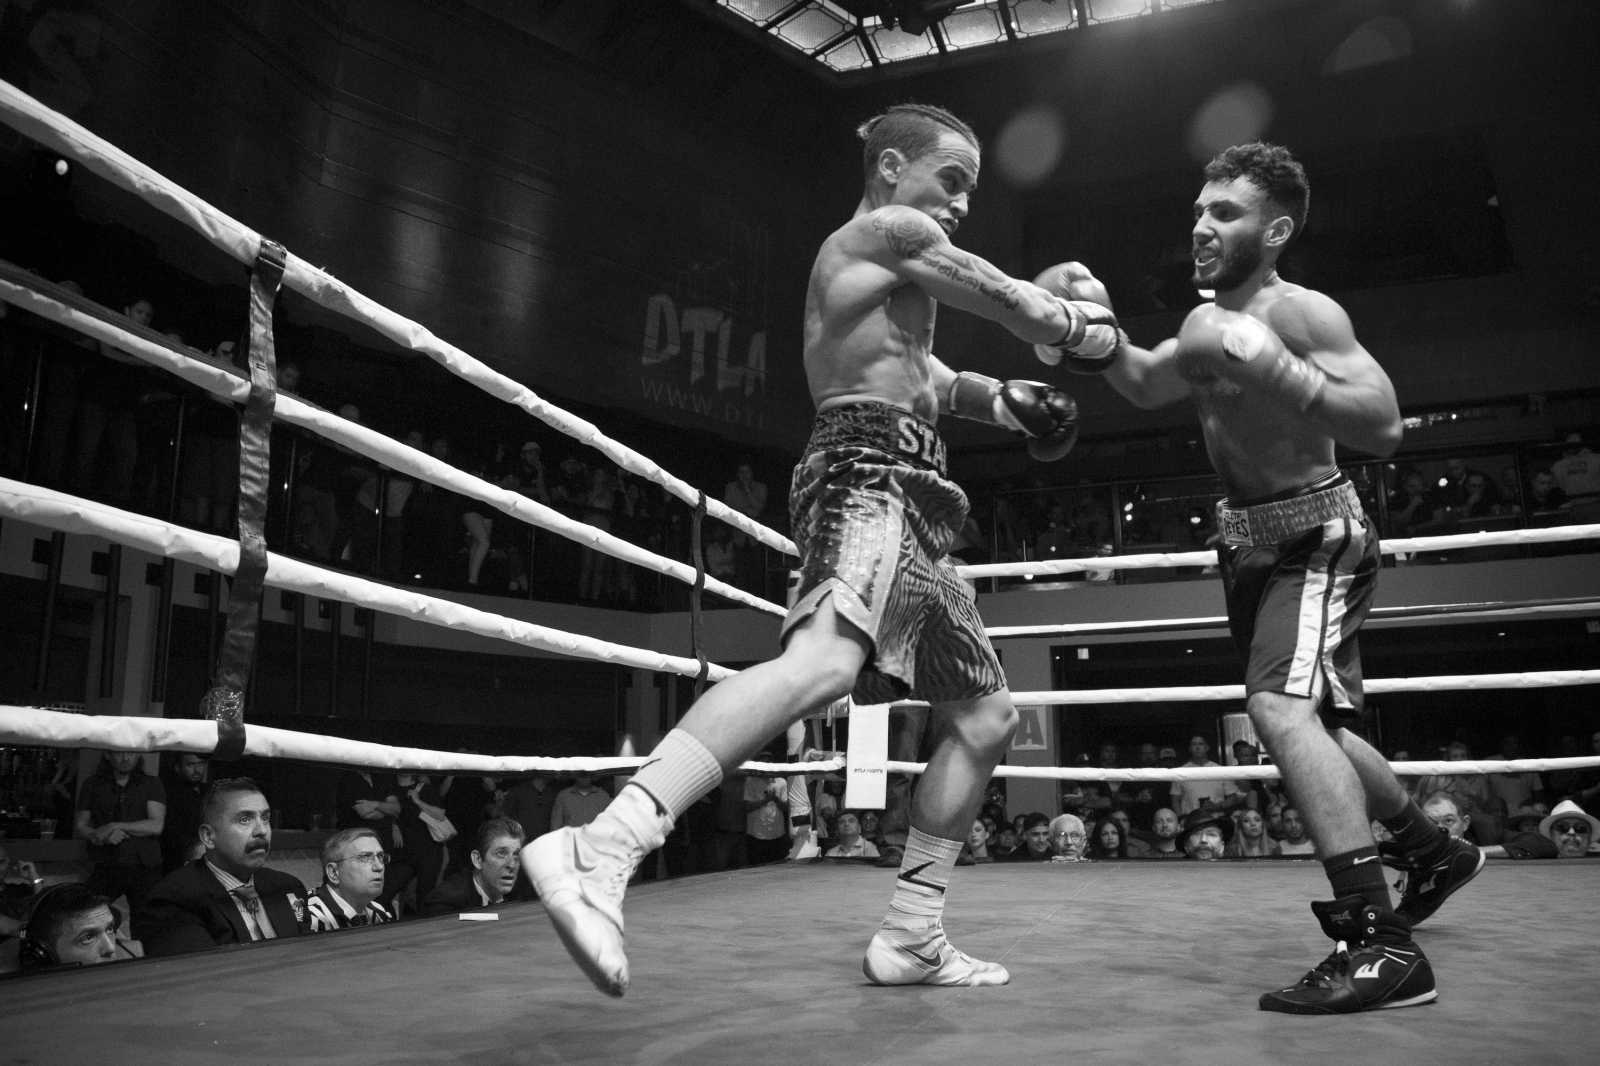 Art and Documentary Photography - Loading boxing-27.jpg